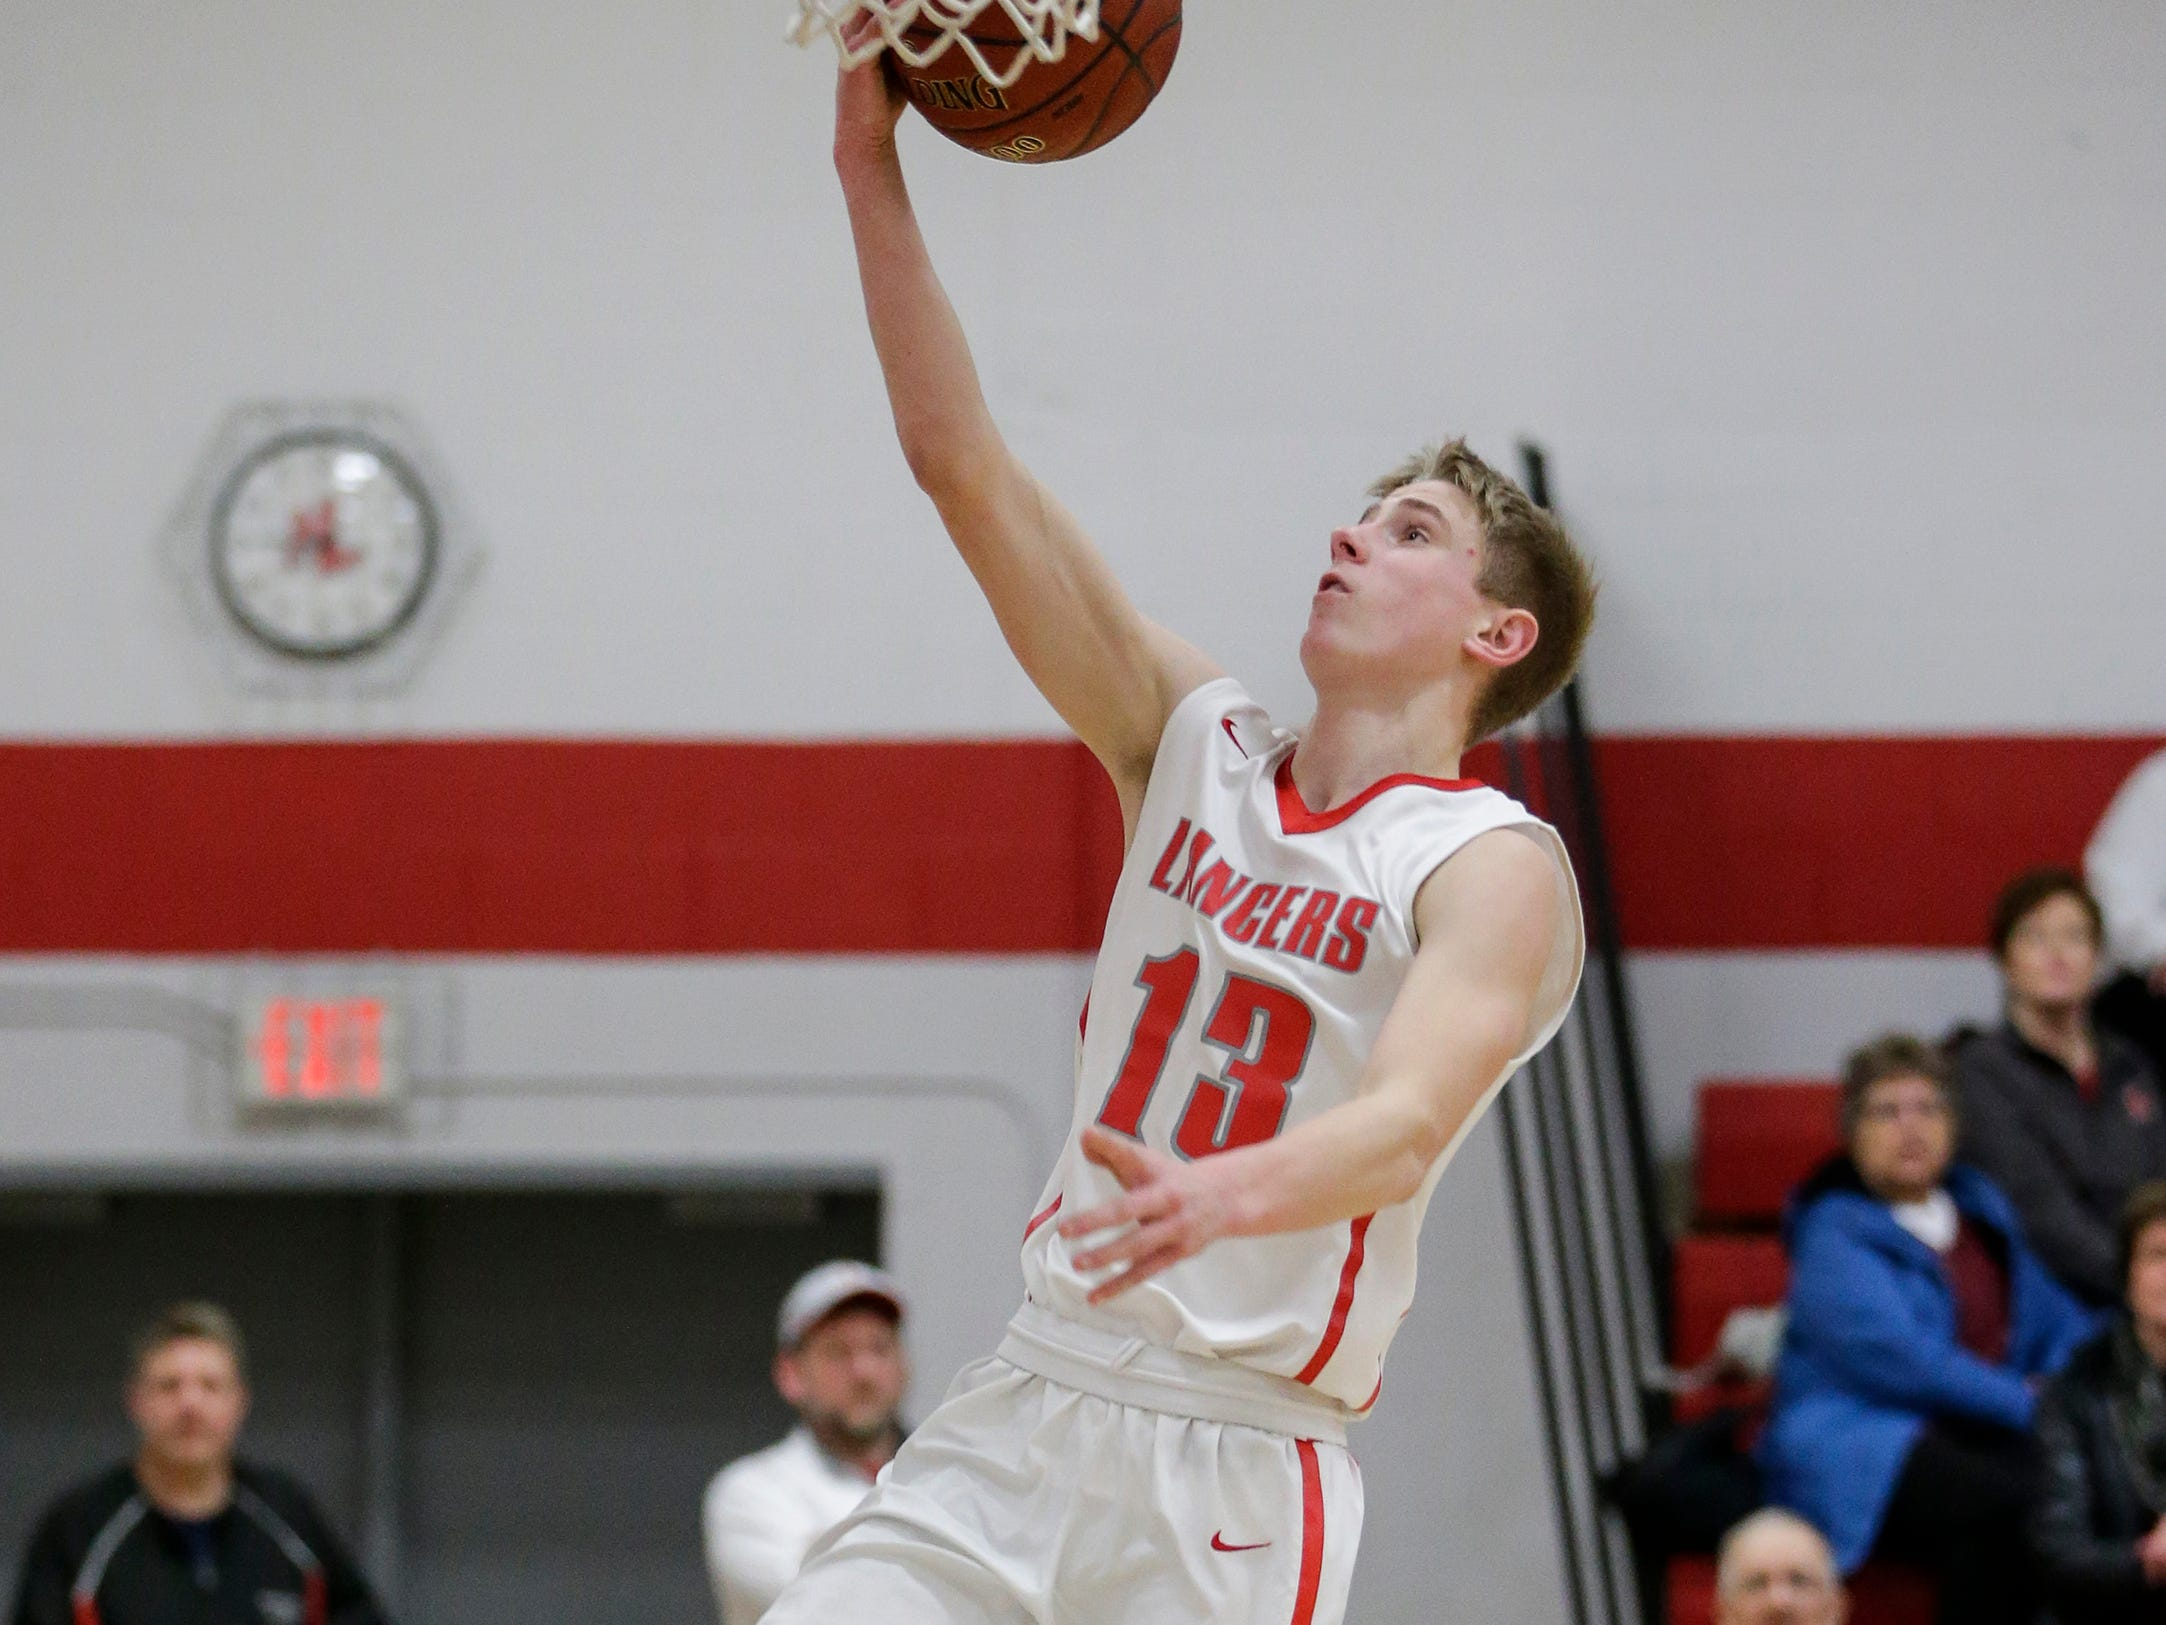 Manitowoc Lutheran's Evan Lischka (13) drives for a layup against Kohler at Manitowoc Lutheran High School Friday, January 18, 2019, in Manitowoc, Wis. Joshua Clark/USA TODAY NETWORK-Wisconsin